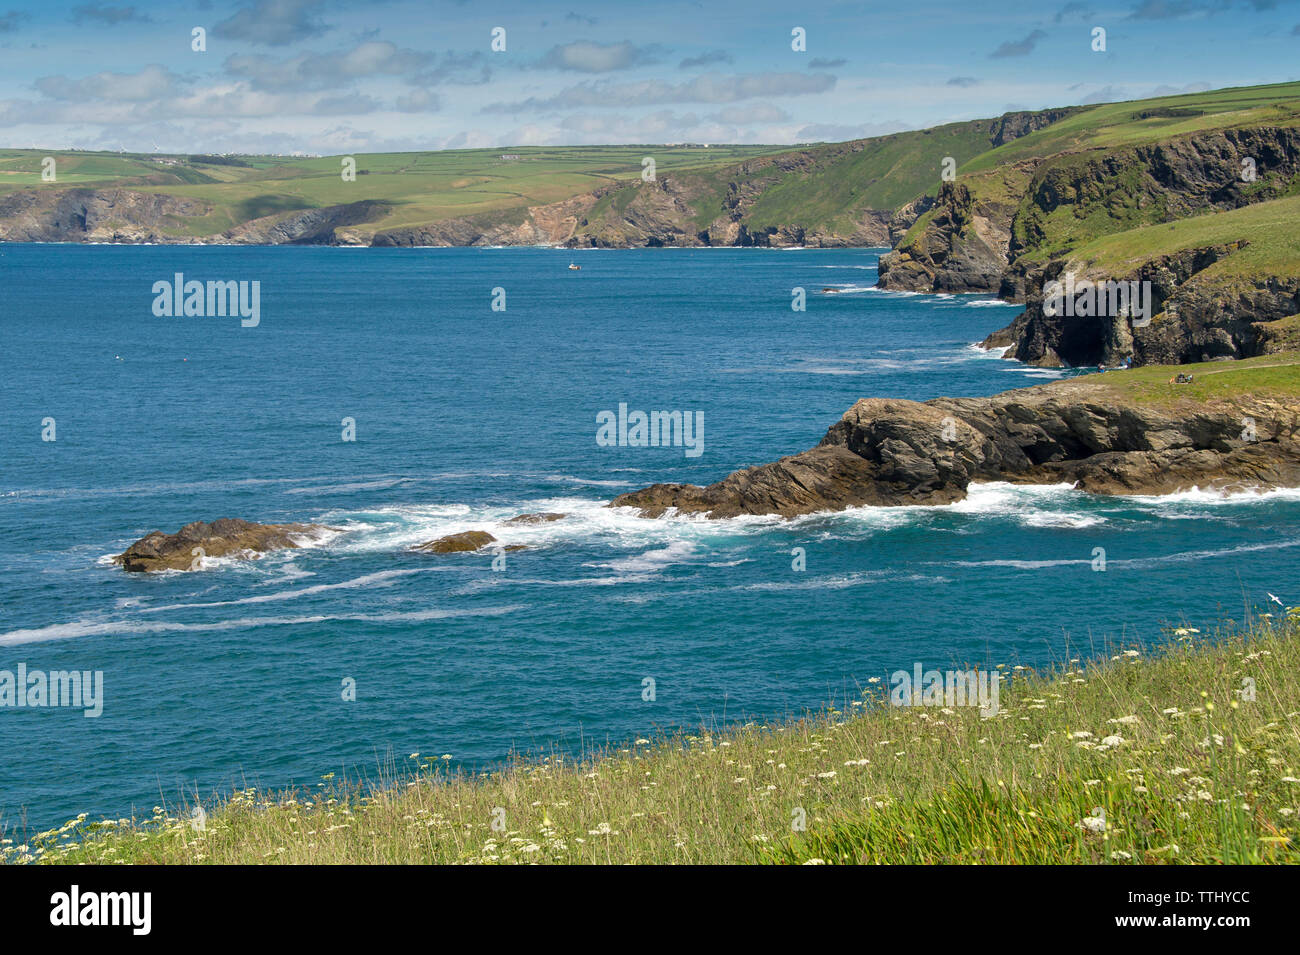 Port Isaac, Cornwall, UK, coastal scenery. - Stock Image